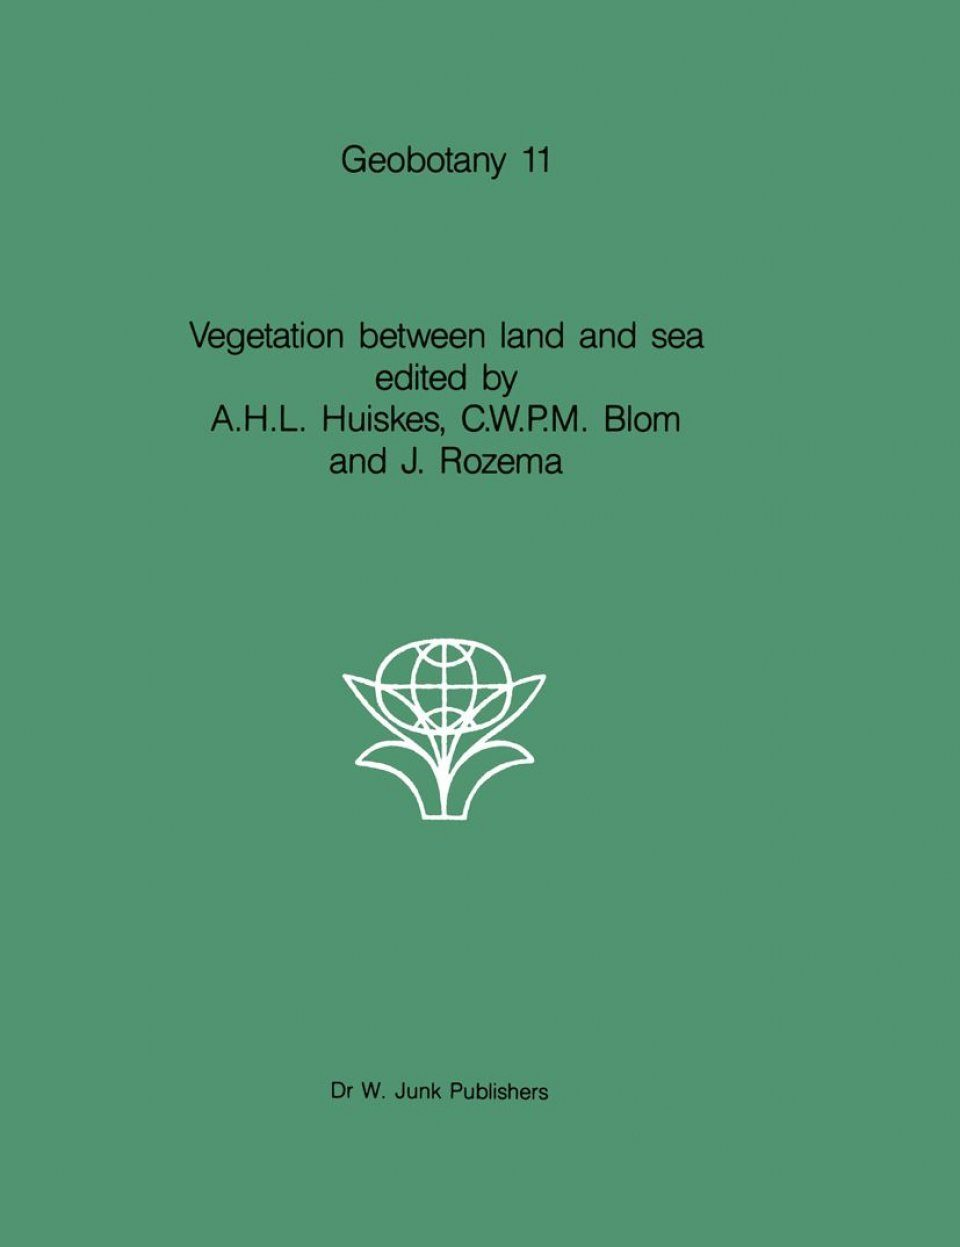 Vegetation between Land and Sea